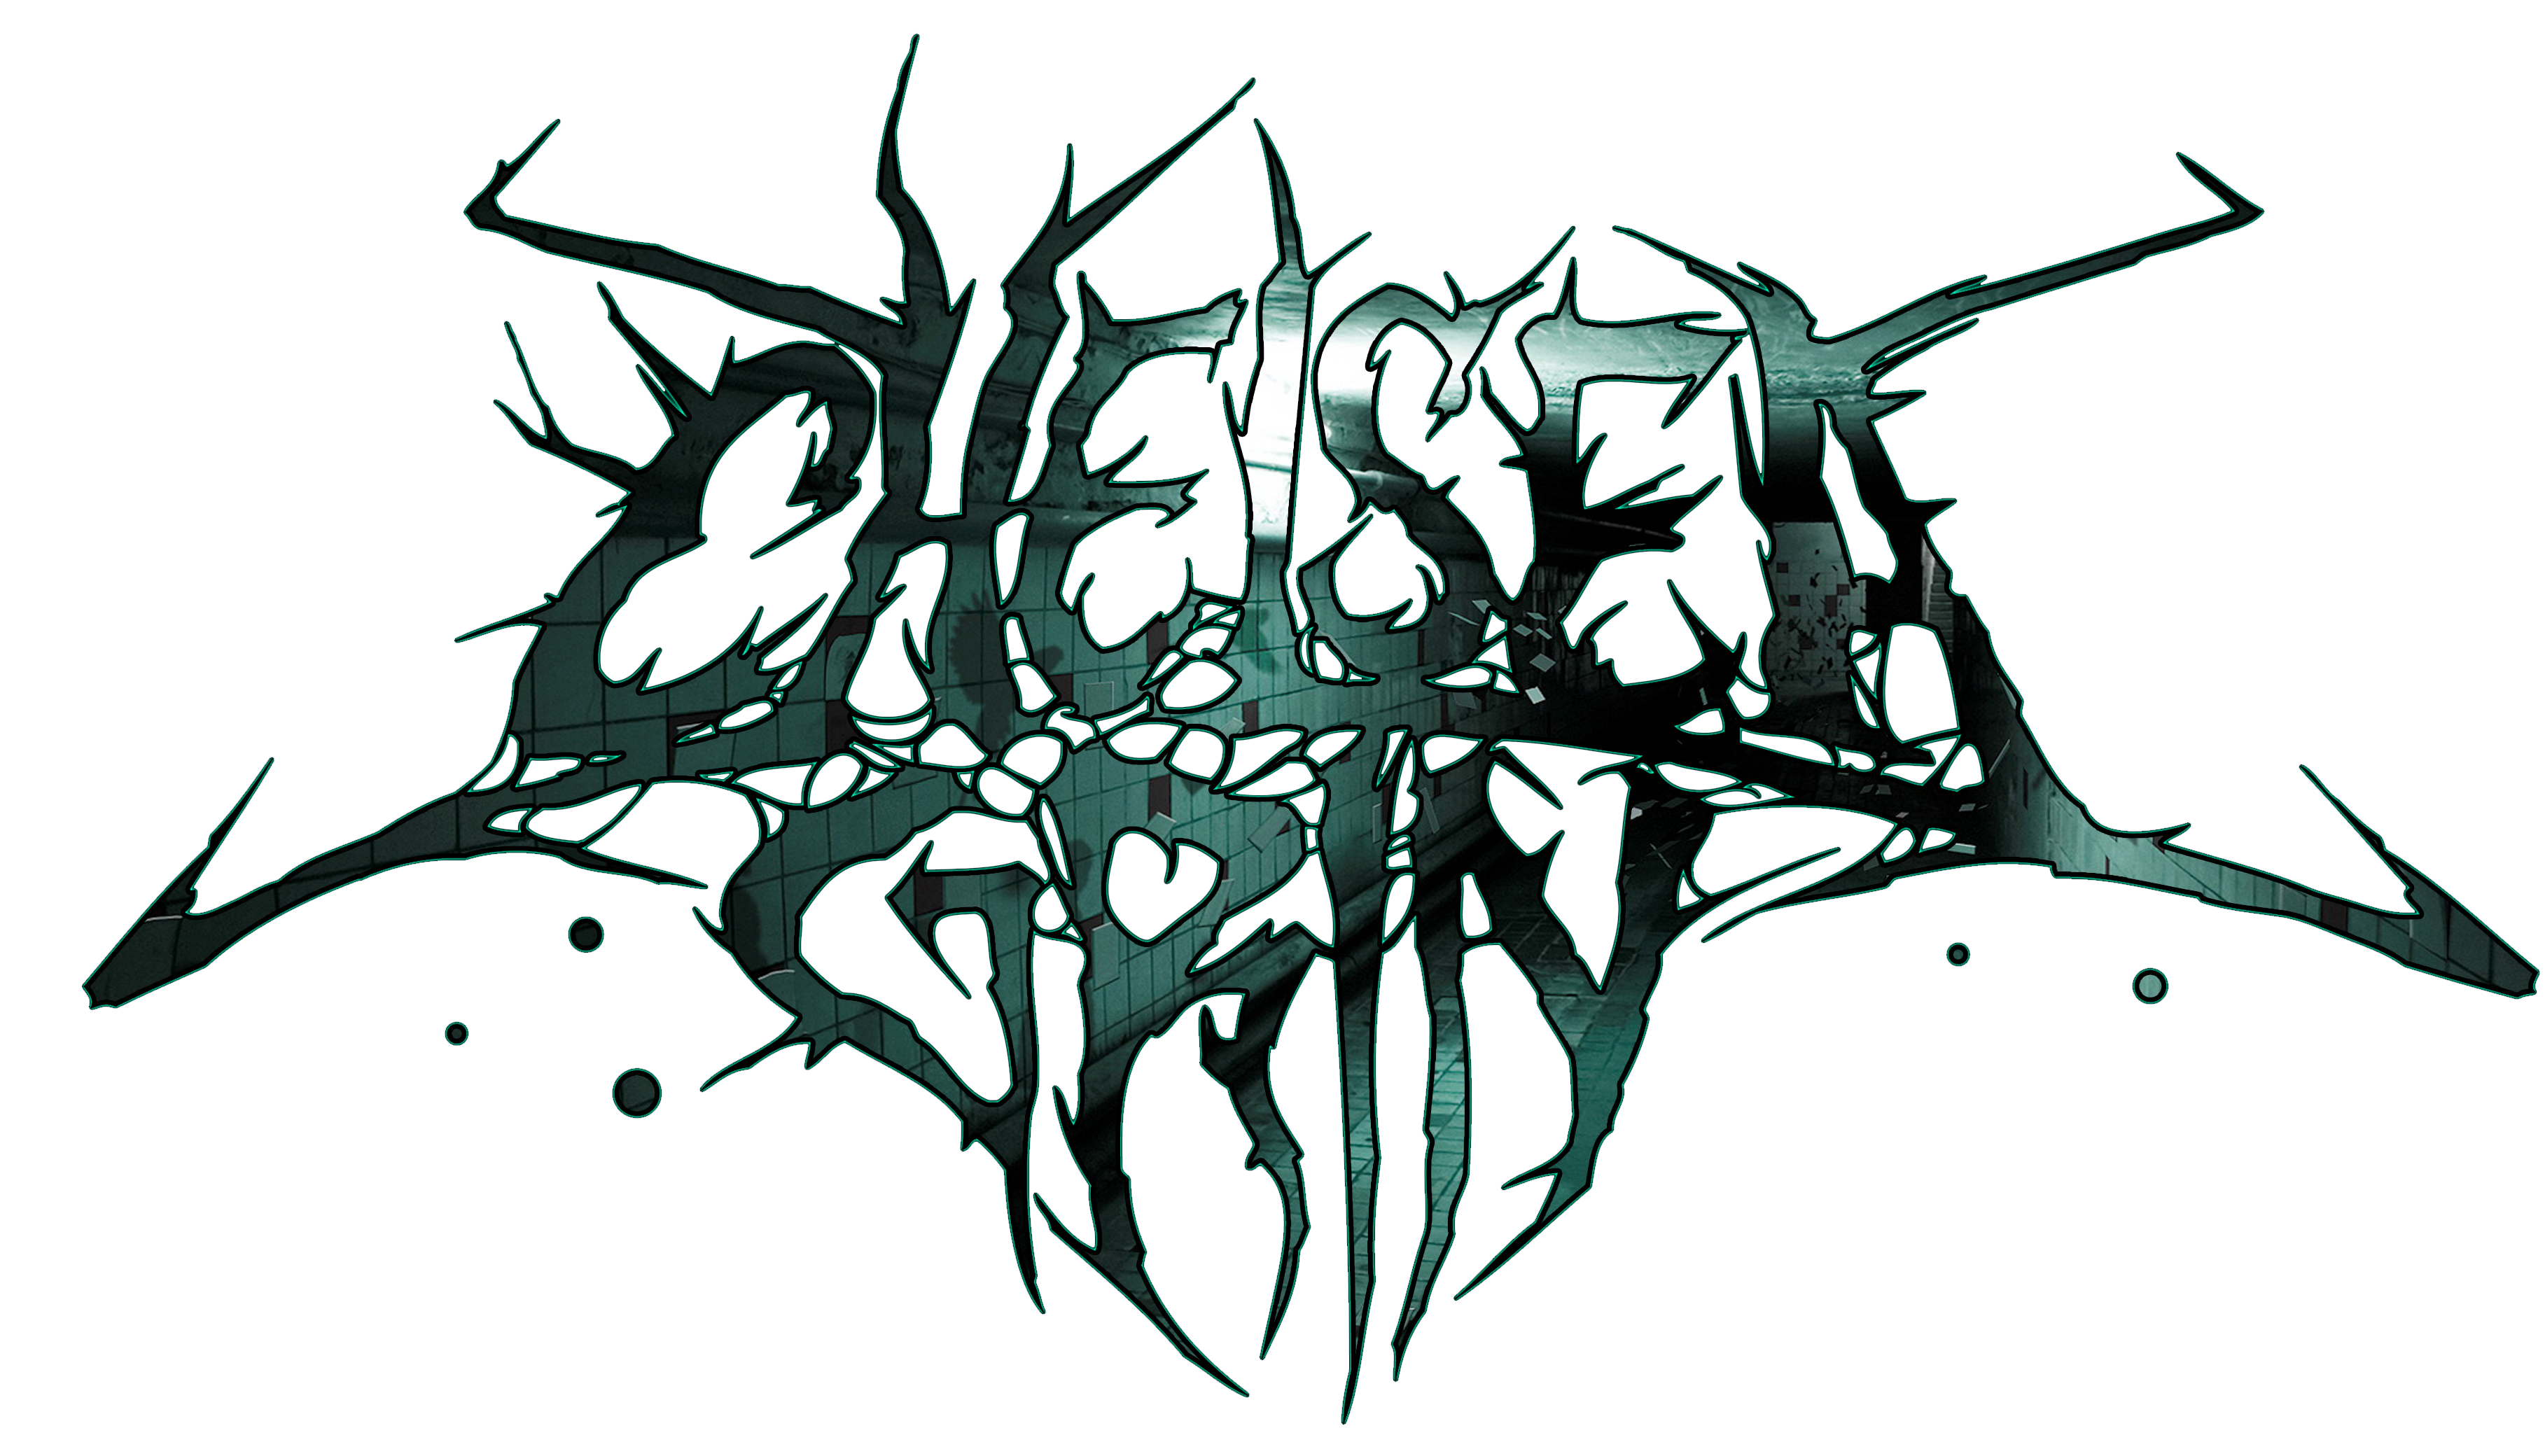 chelsea grin logo by parkwayperry on deviantart